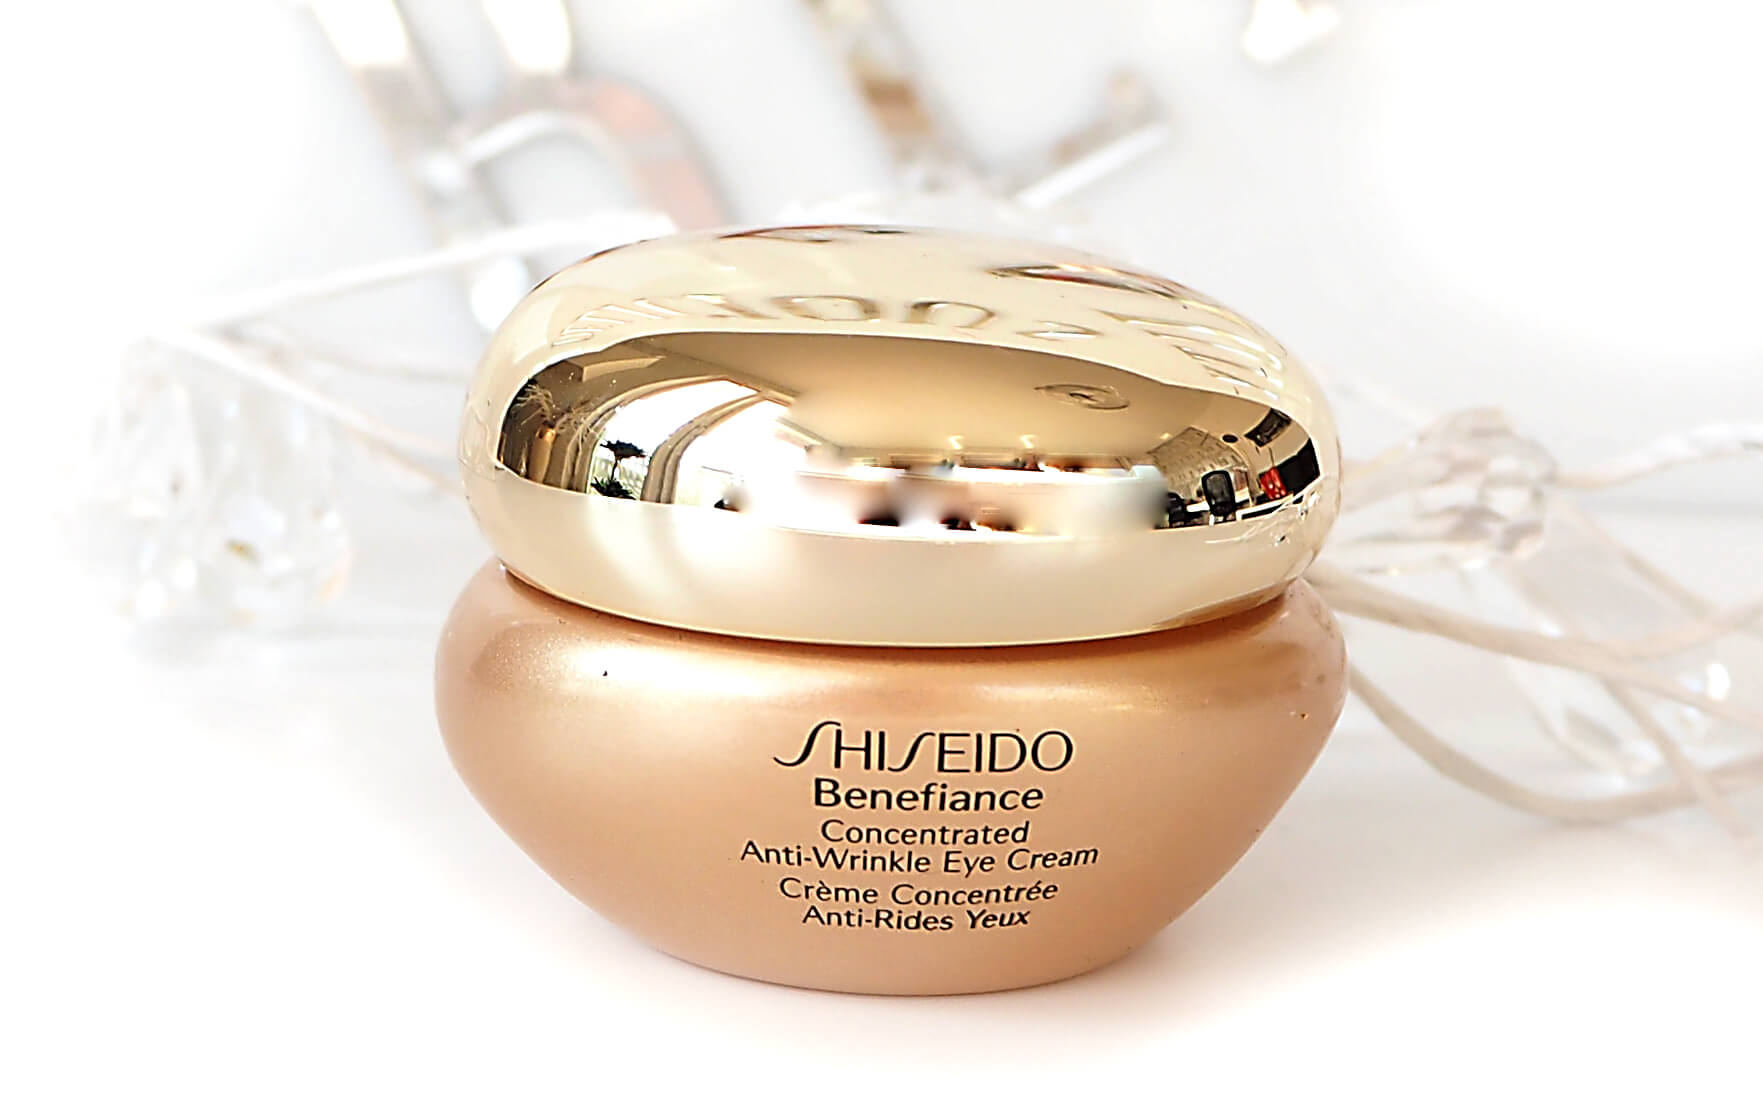 SHISEIDO BENEFIENCE Concentrated Anti-Wrinkle Eye Cream